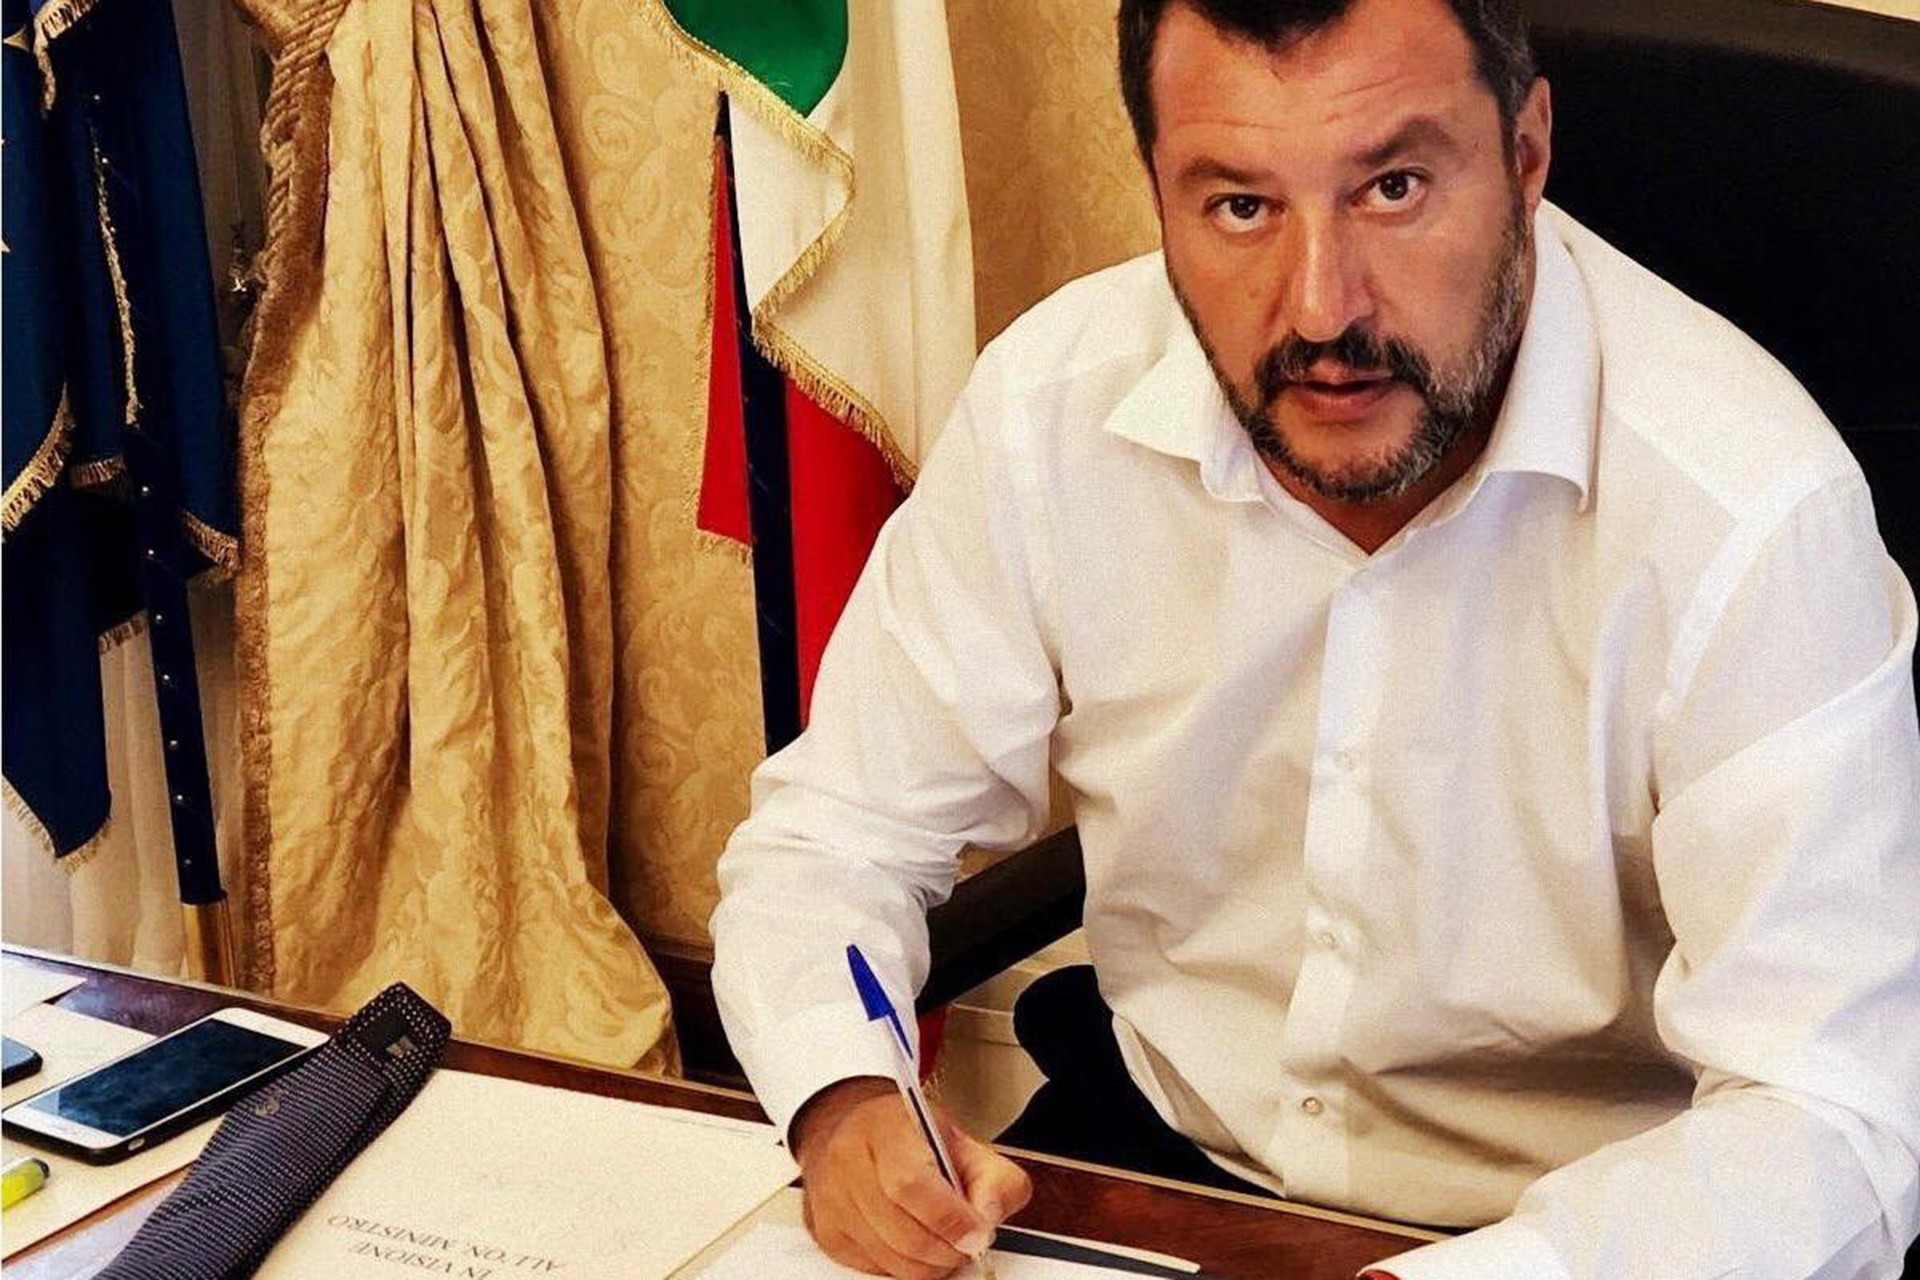 On the populist government crisis in Italy: Salvini wants all the power